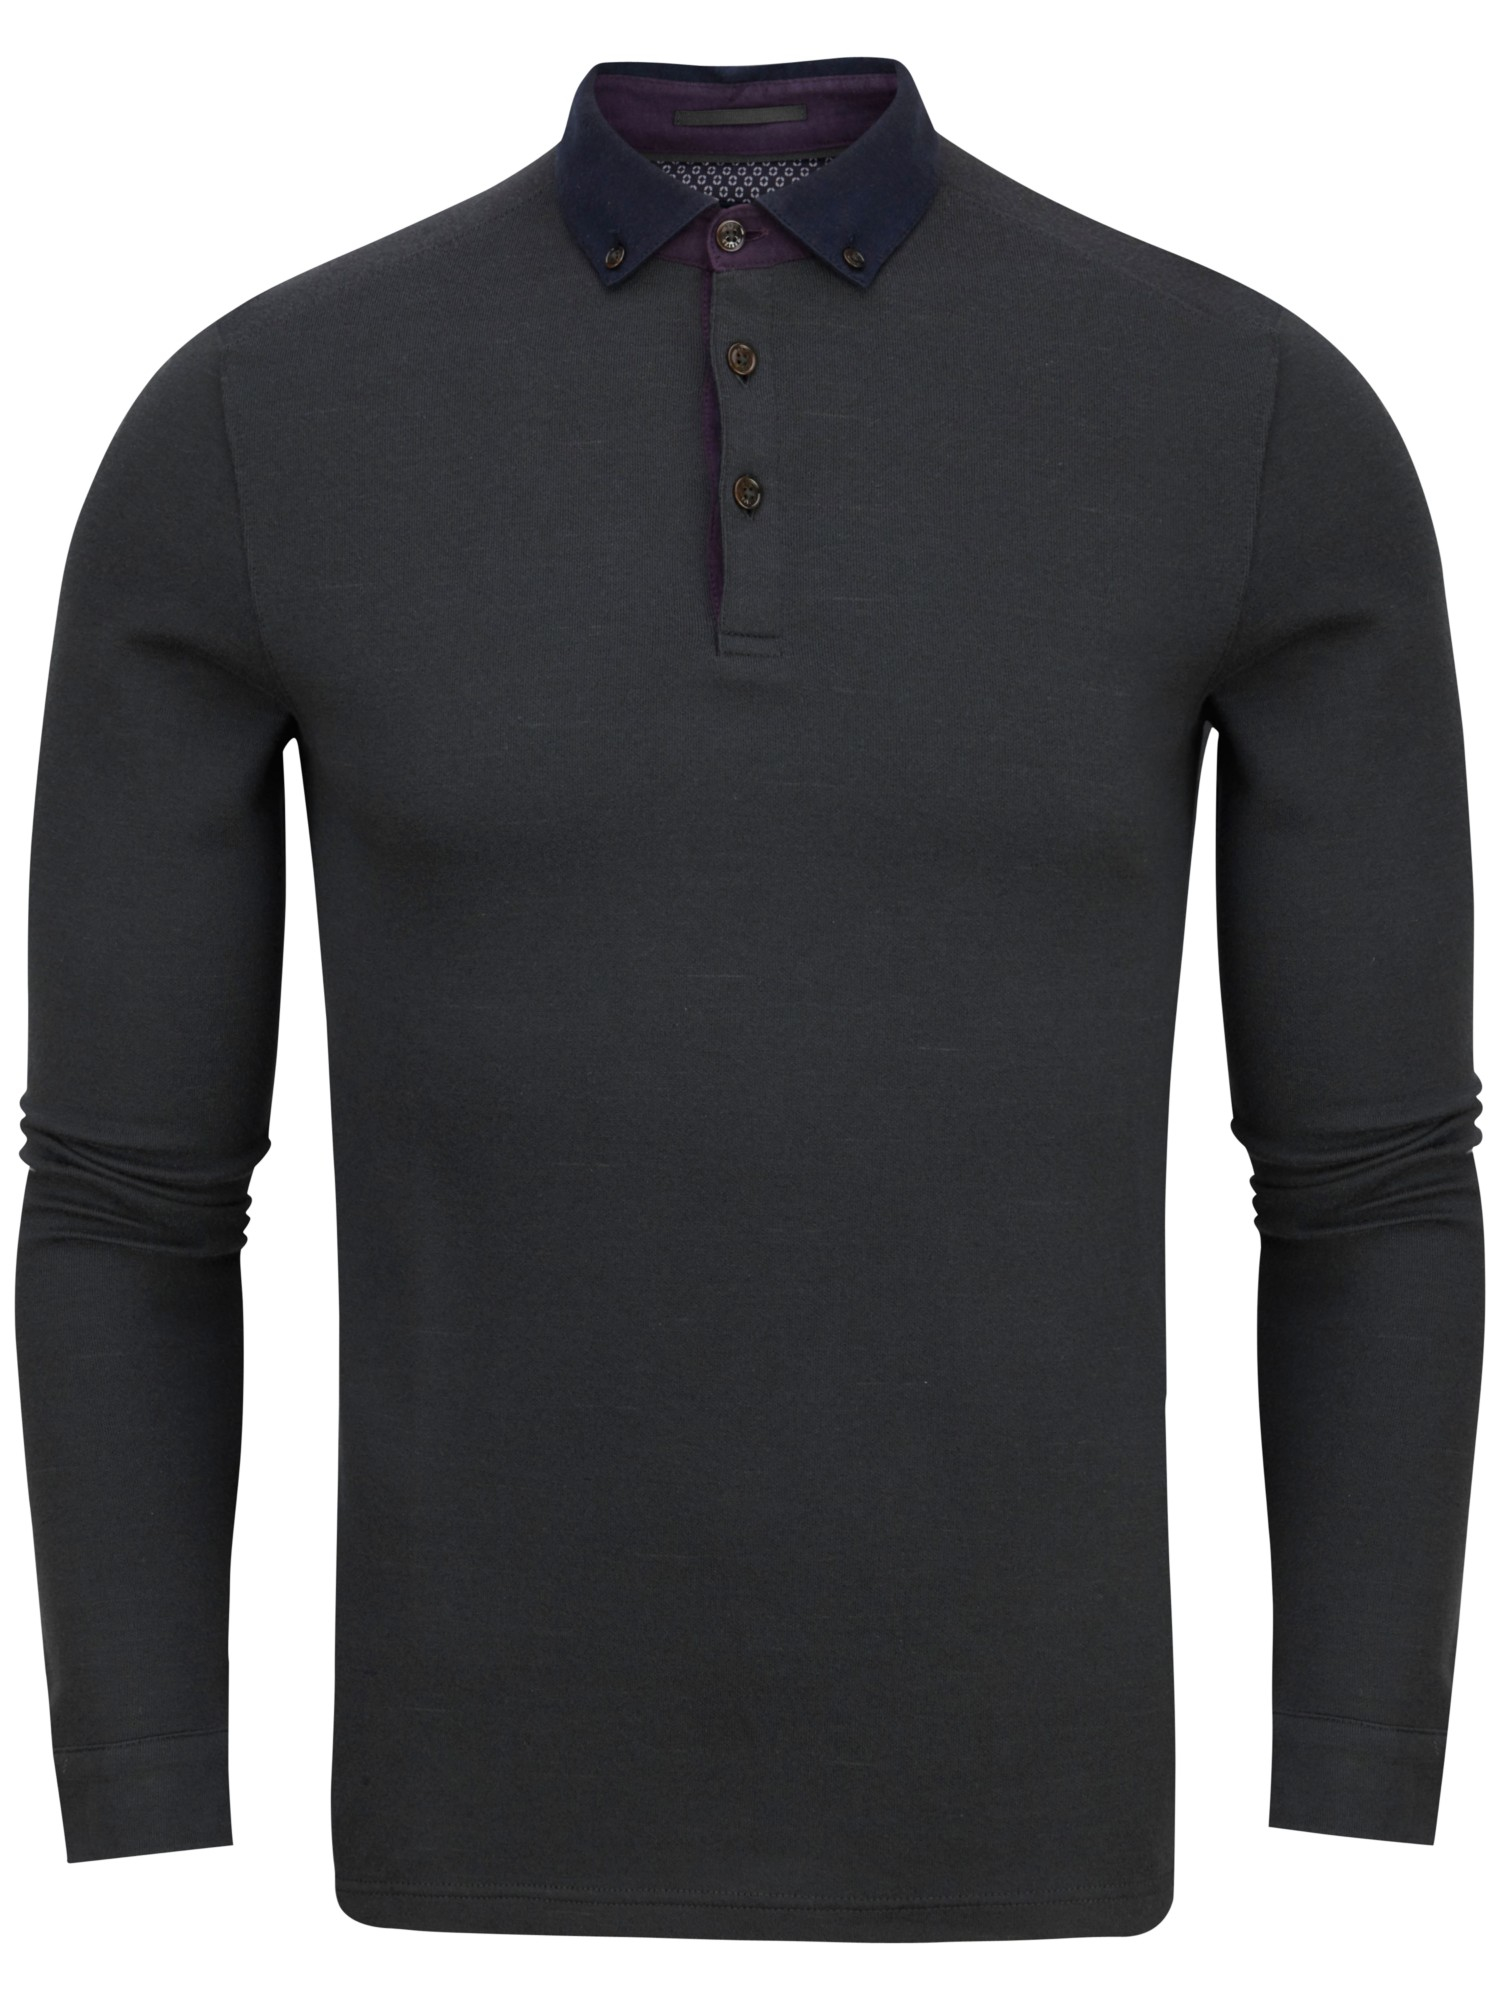 2fc6aaee034d Ted Baker Longlit Long Sleeve Polo Shirt in Gray for Men - Lyst